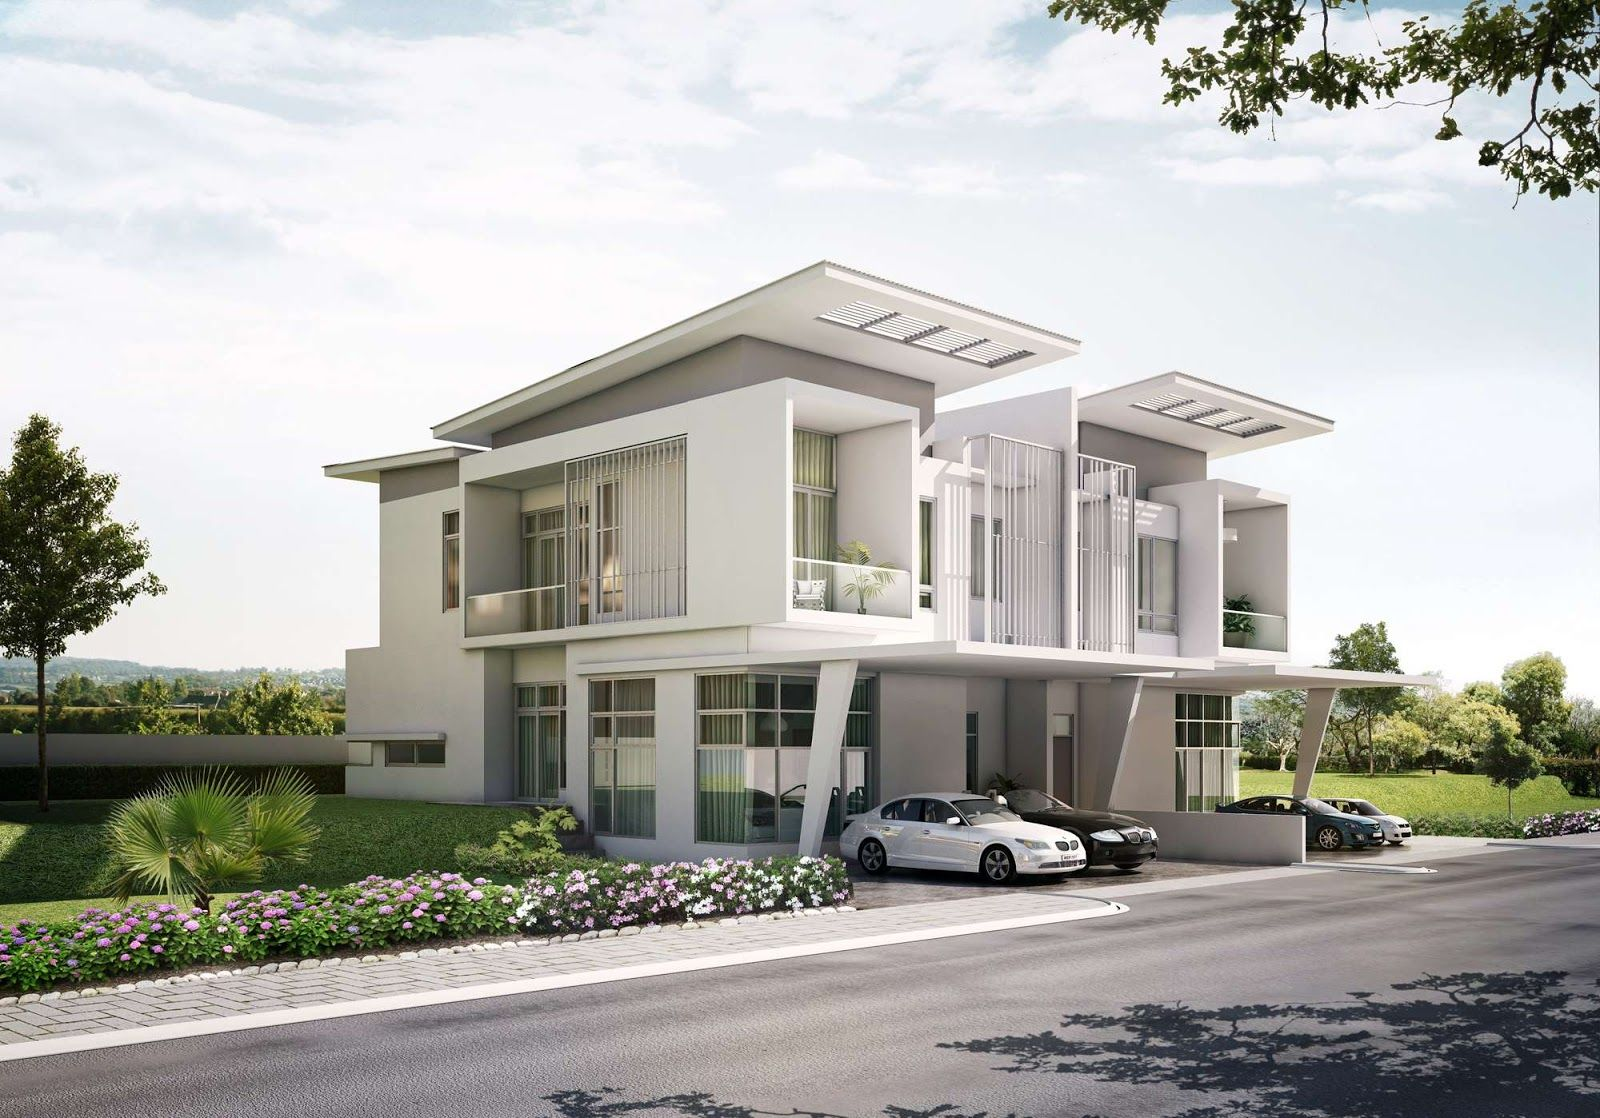 Modern Townhouse With Carport Google Search Space Likes Pinterest Modern Townhouse And